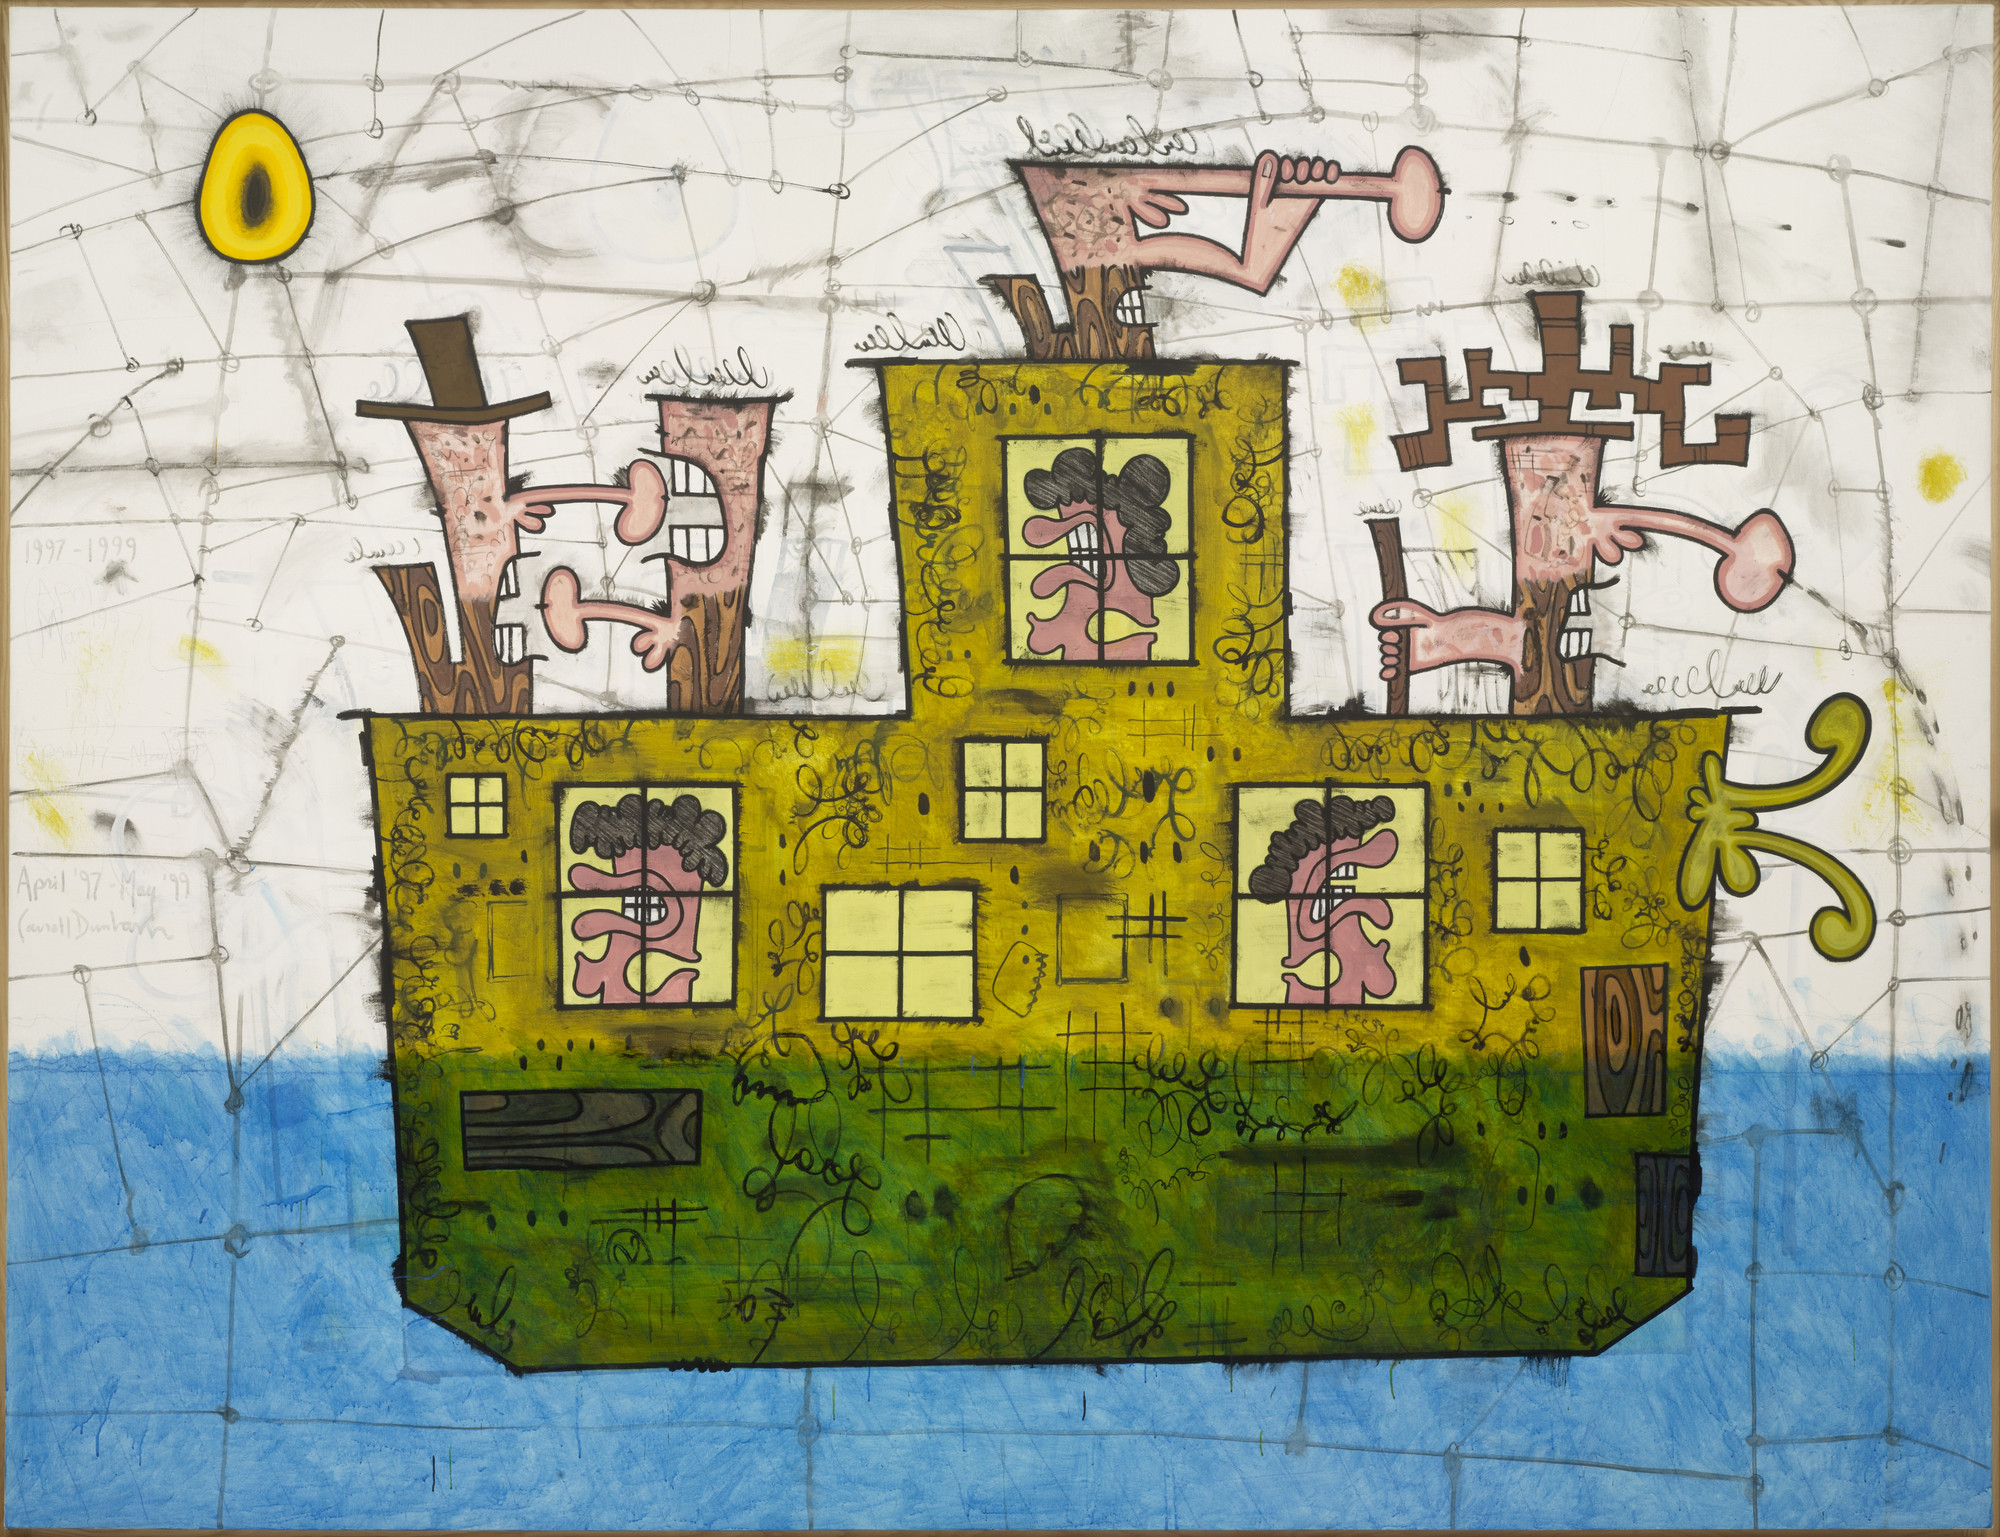 Carroll Dunham. Ship. New York, April 1997 - May 1999